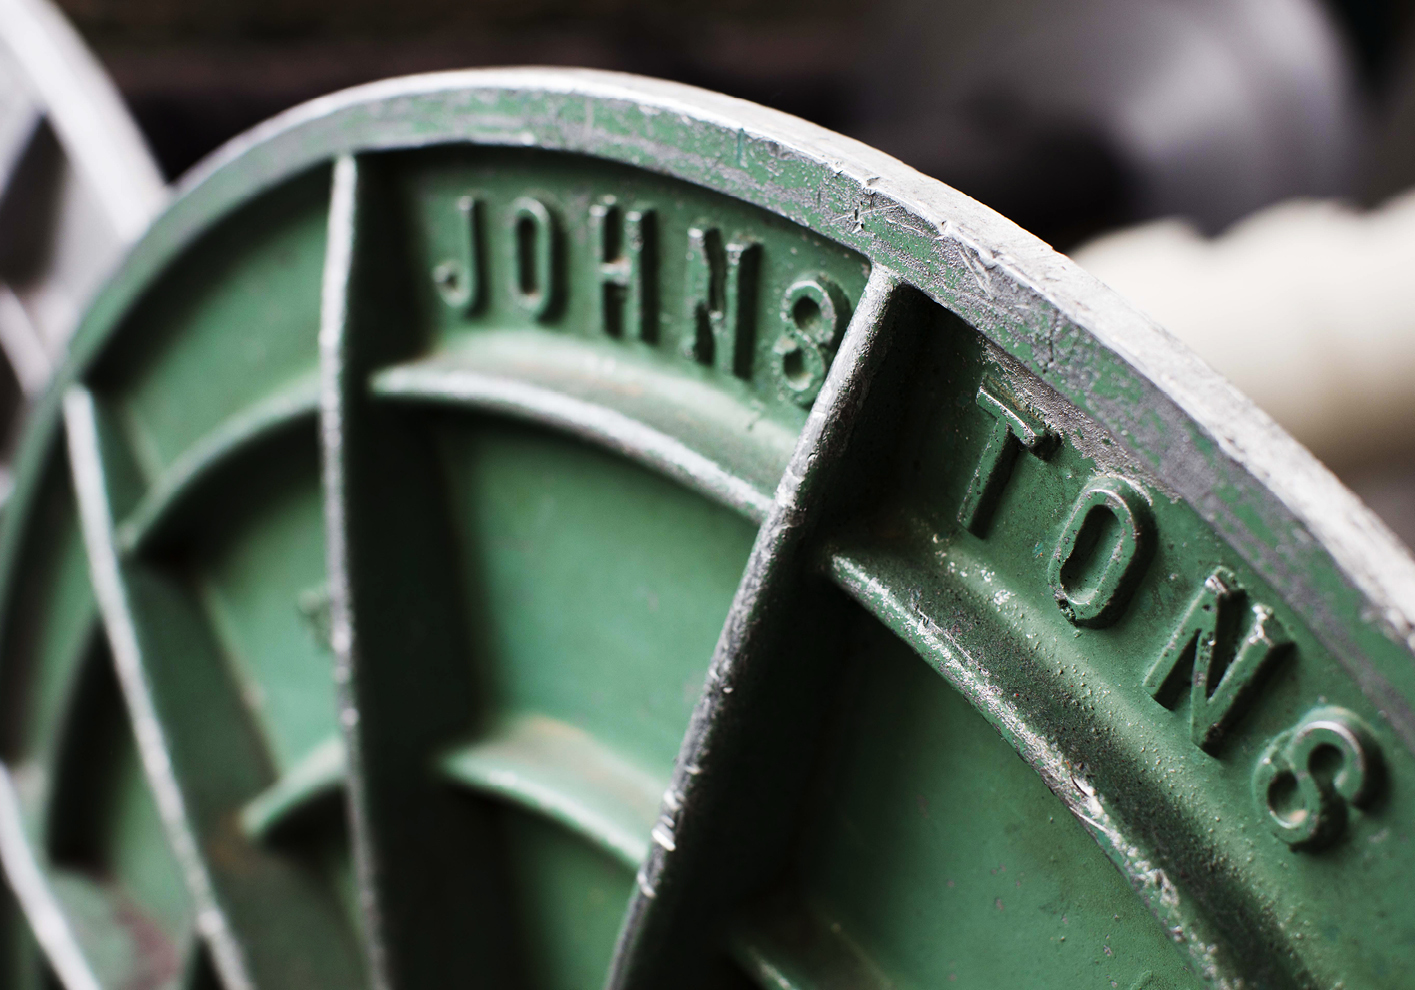 Johnstons of Elgin combines traditional craft with cutting-edge technology